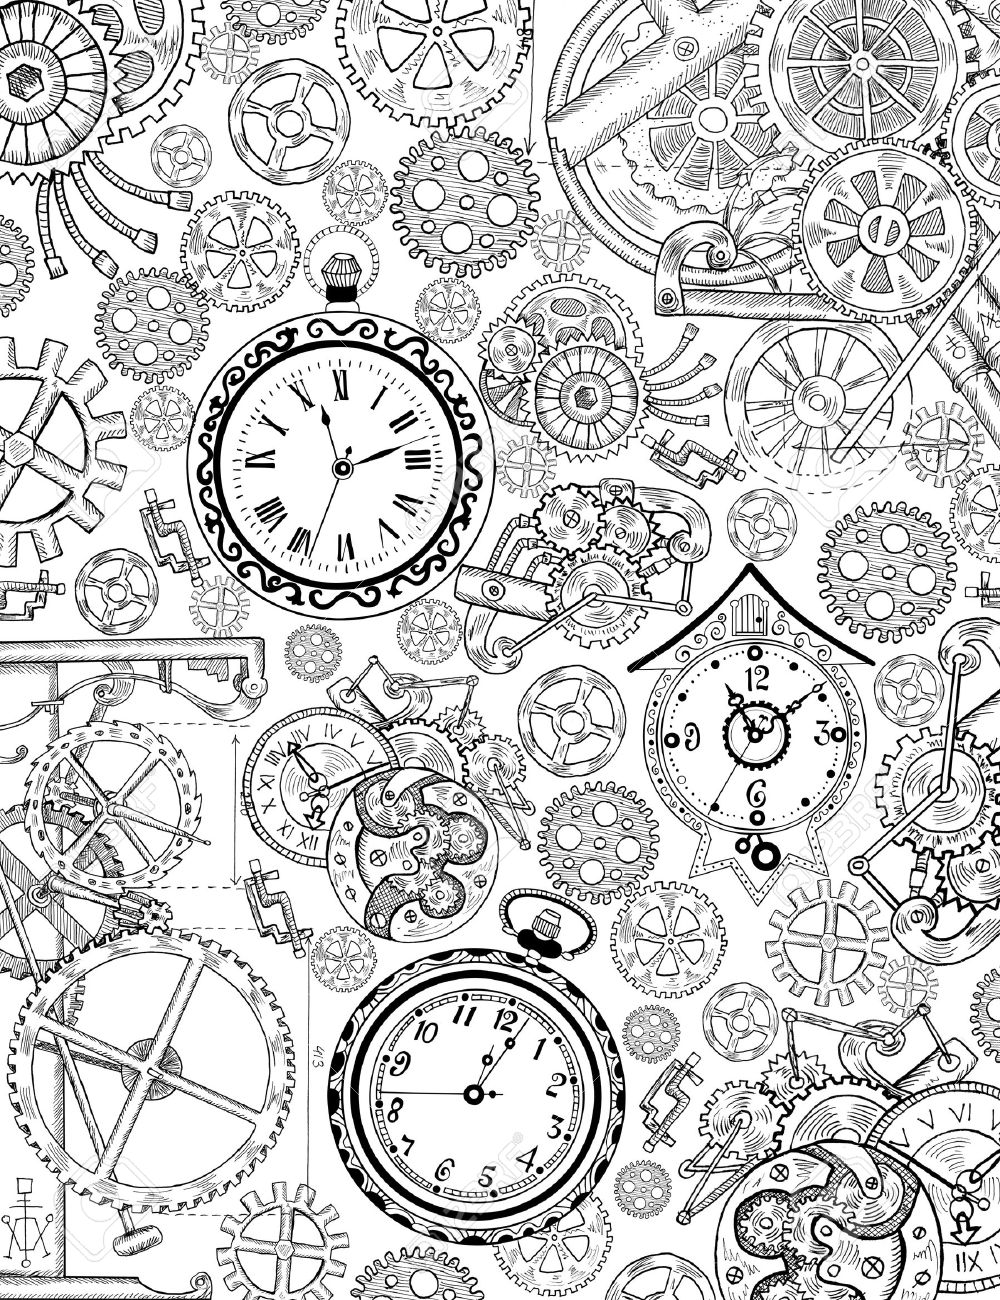 1000x1300 Coloring Book Page With Mechanical Details, Cogs, Gears And Old